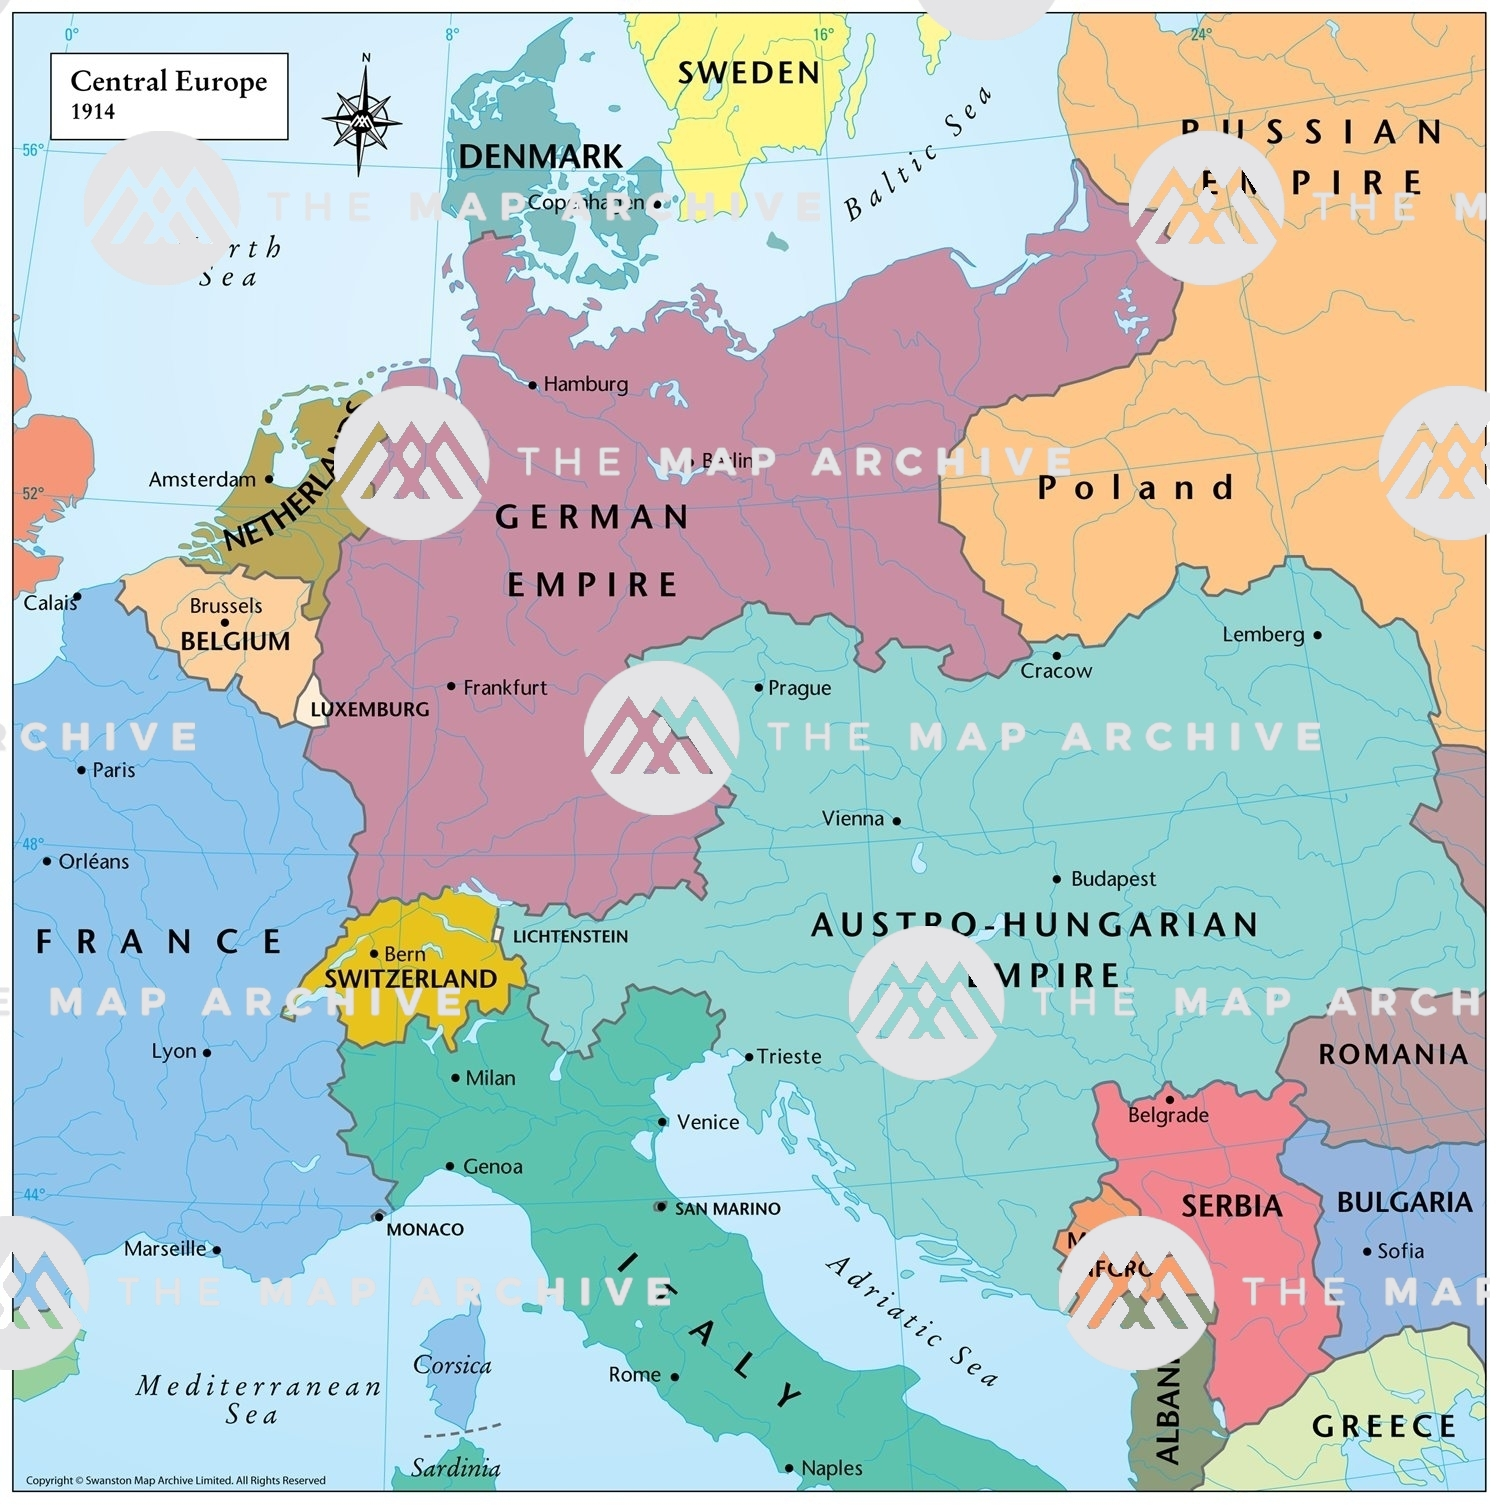 europe map in 1914 Central Europe 1914